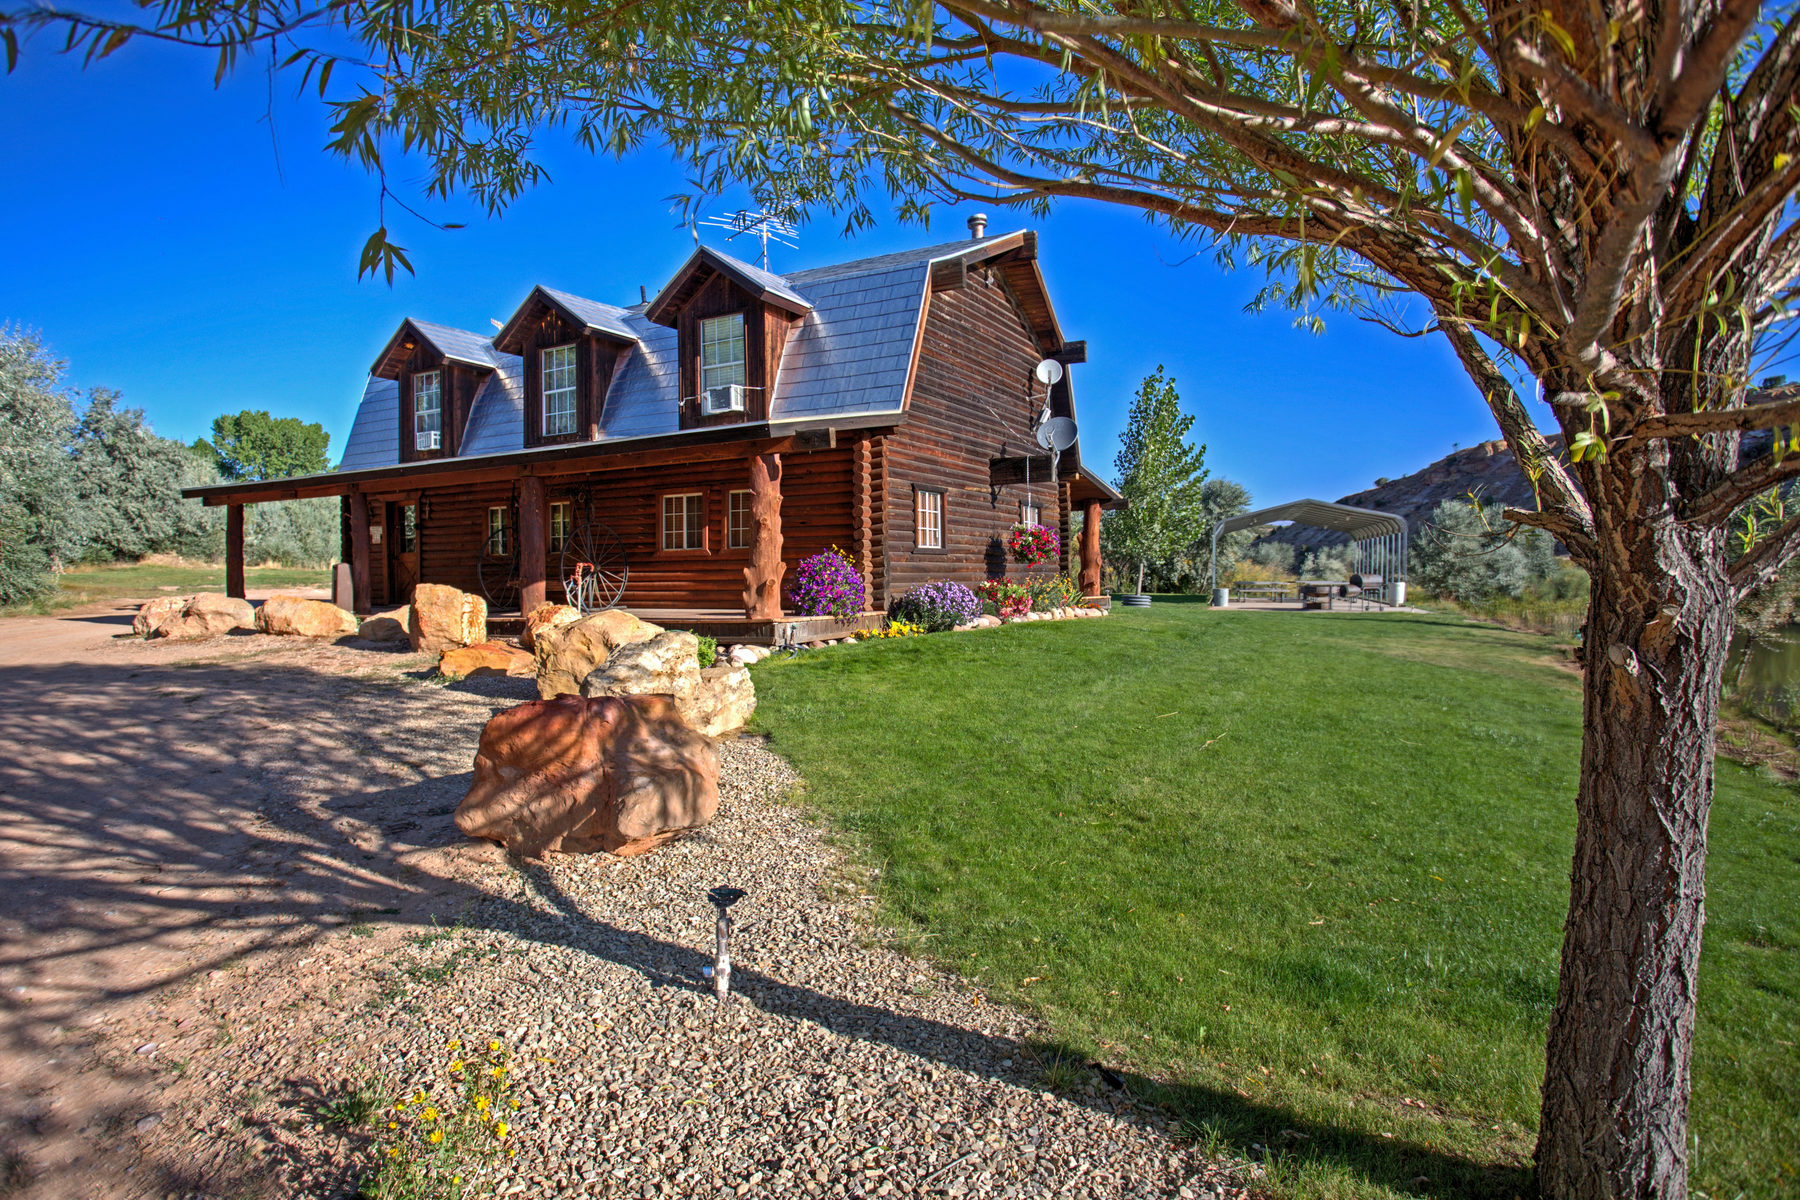 Fattoria / ranch / campagna per Vendita alle ore LC Ranch, Your Fly Fishing & Outdoor Recreational Enthusiast's Dream 14535 West 4000 North, Altamont, Utah, 84001 Stati Uniti